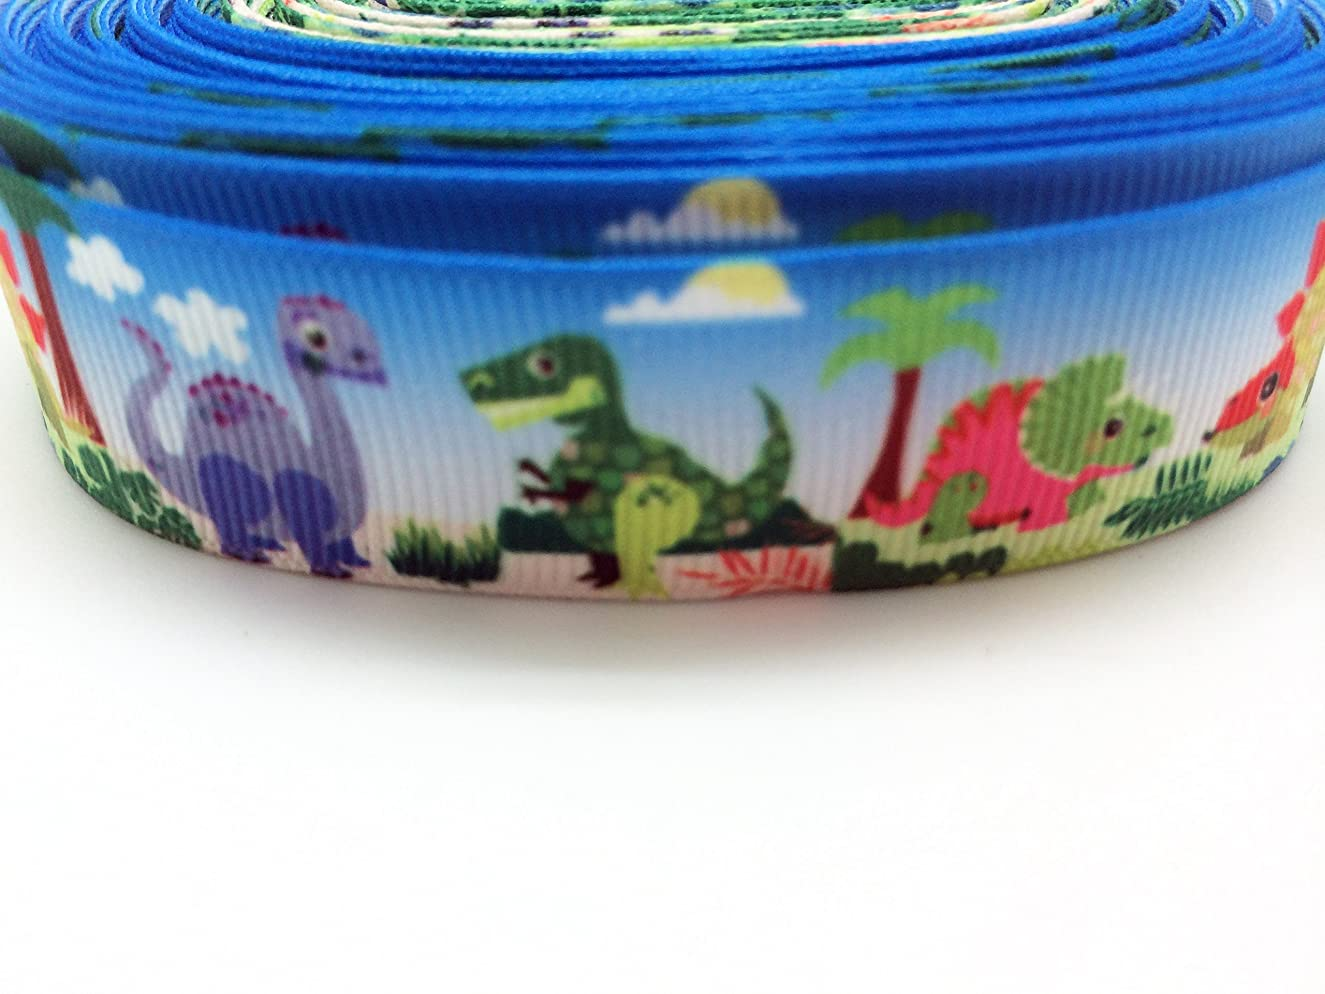 PEPPERLONELY Brand 10 Yards 22mm (7/8 Inch) Dinosaur Grosgrain Ribbon